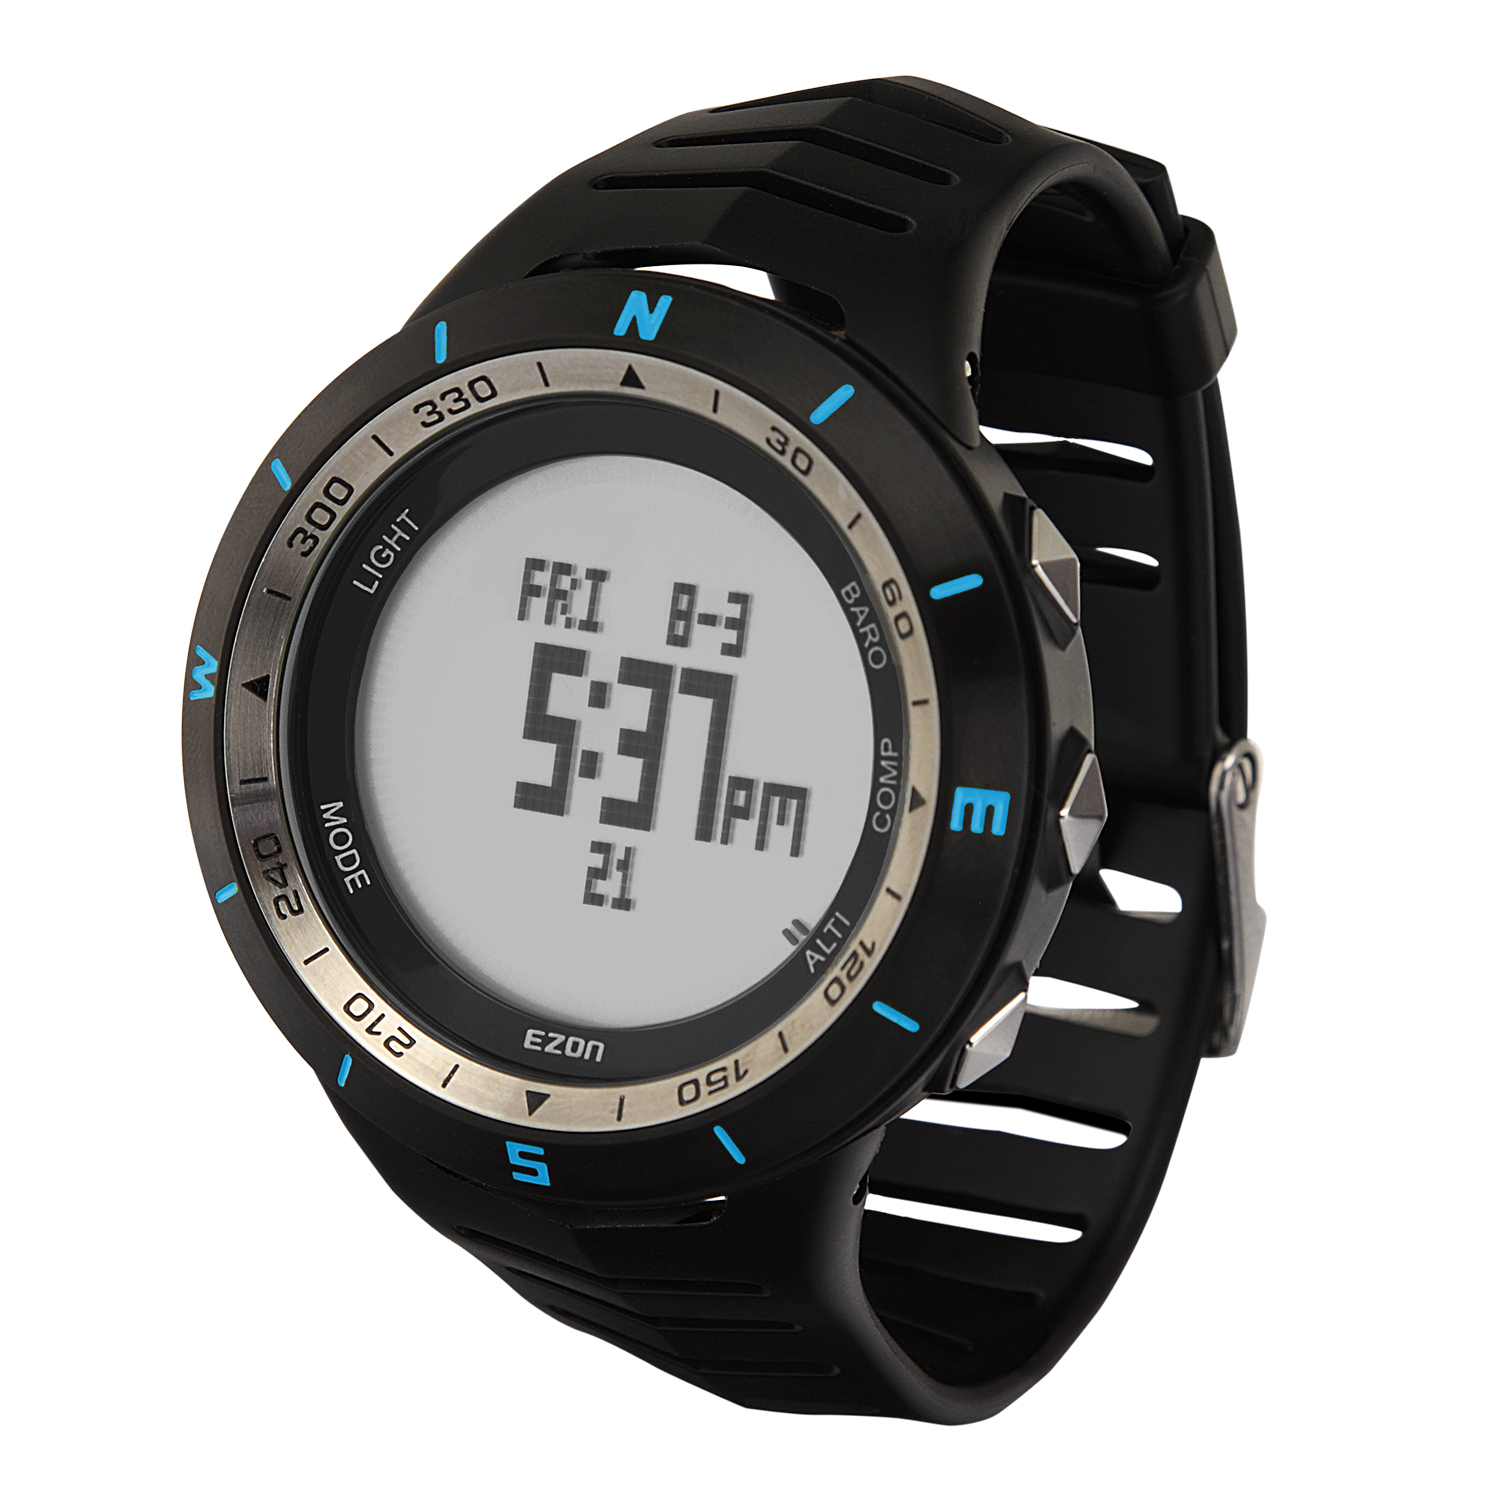 H005A13(Blue) Multi-function Outdoor Mountaineering Watch